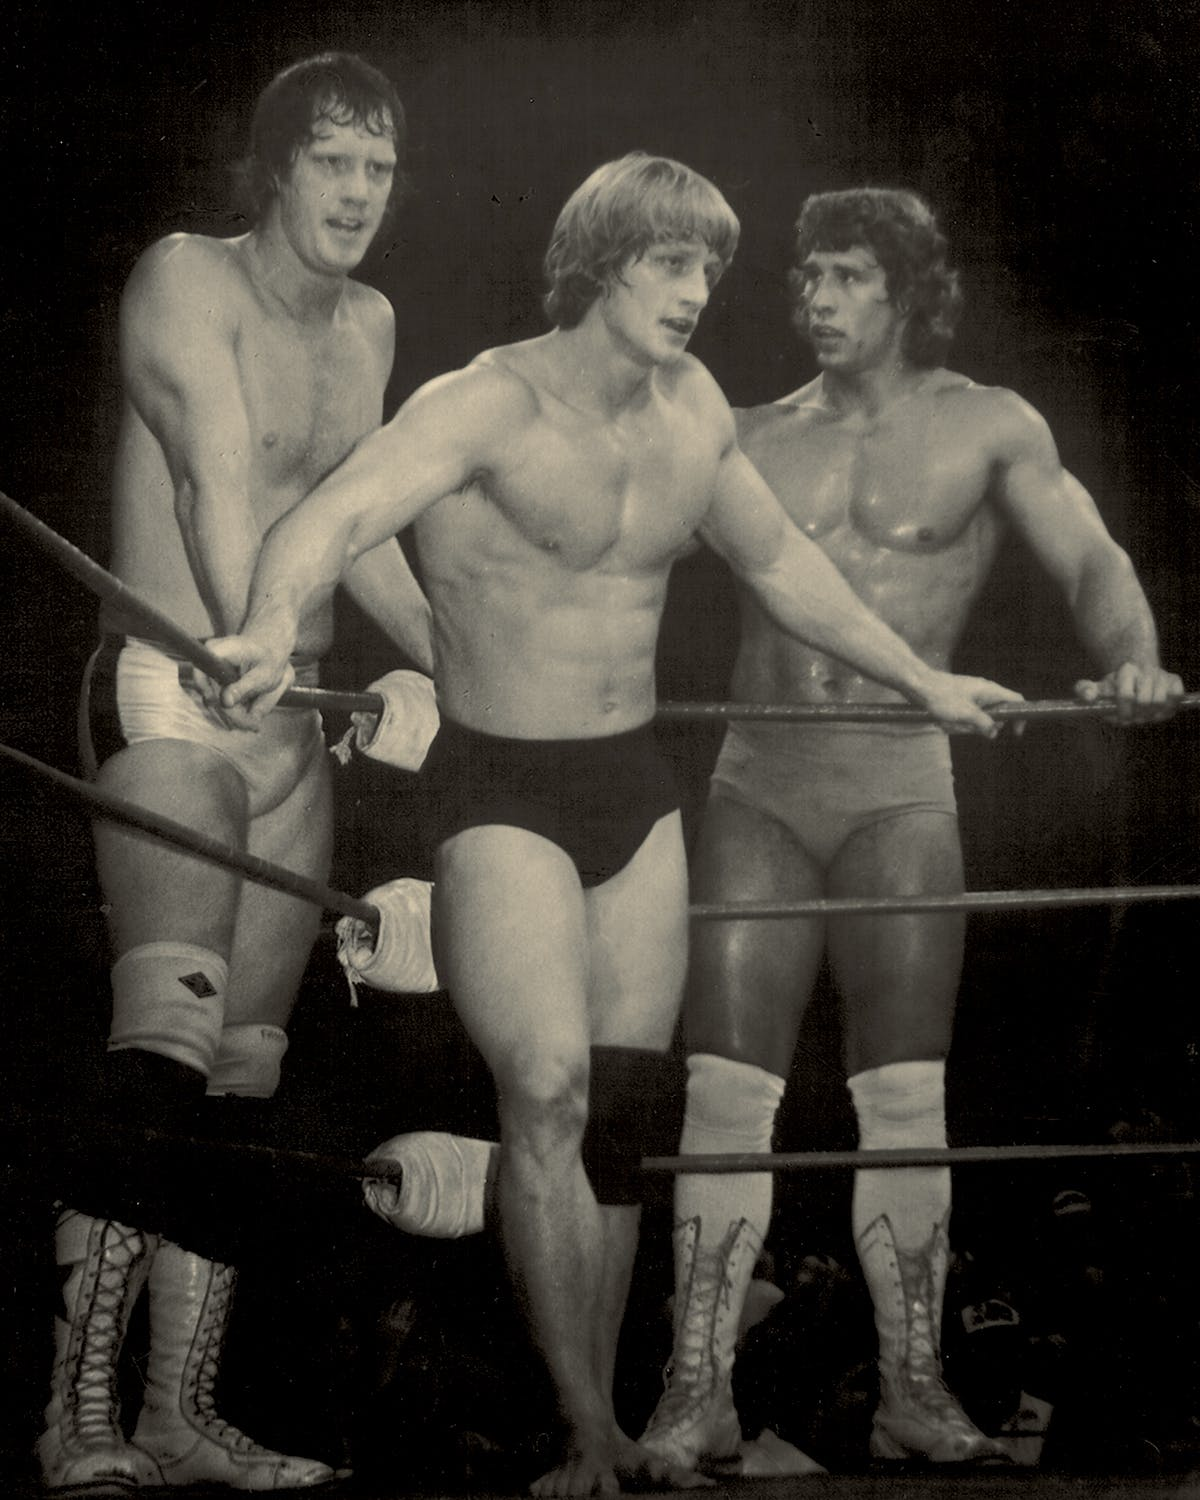 Kings of the Ring: From left, David, Kevin, and Kerry